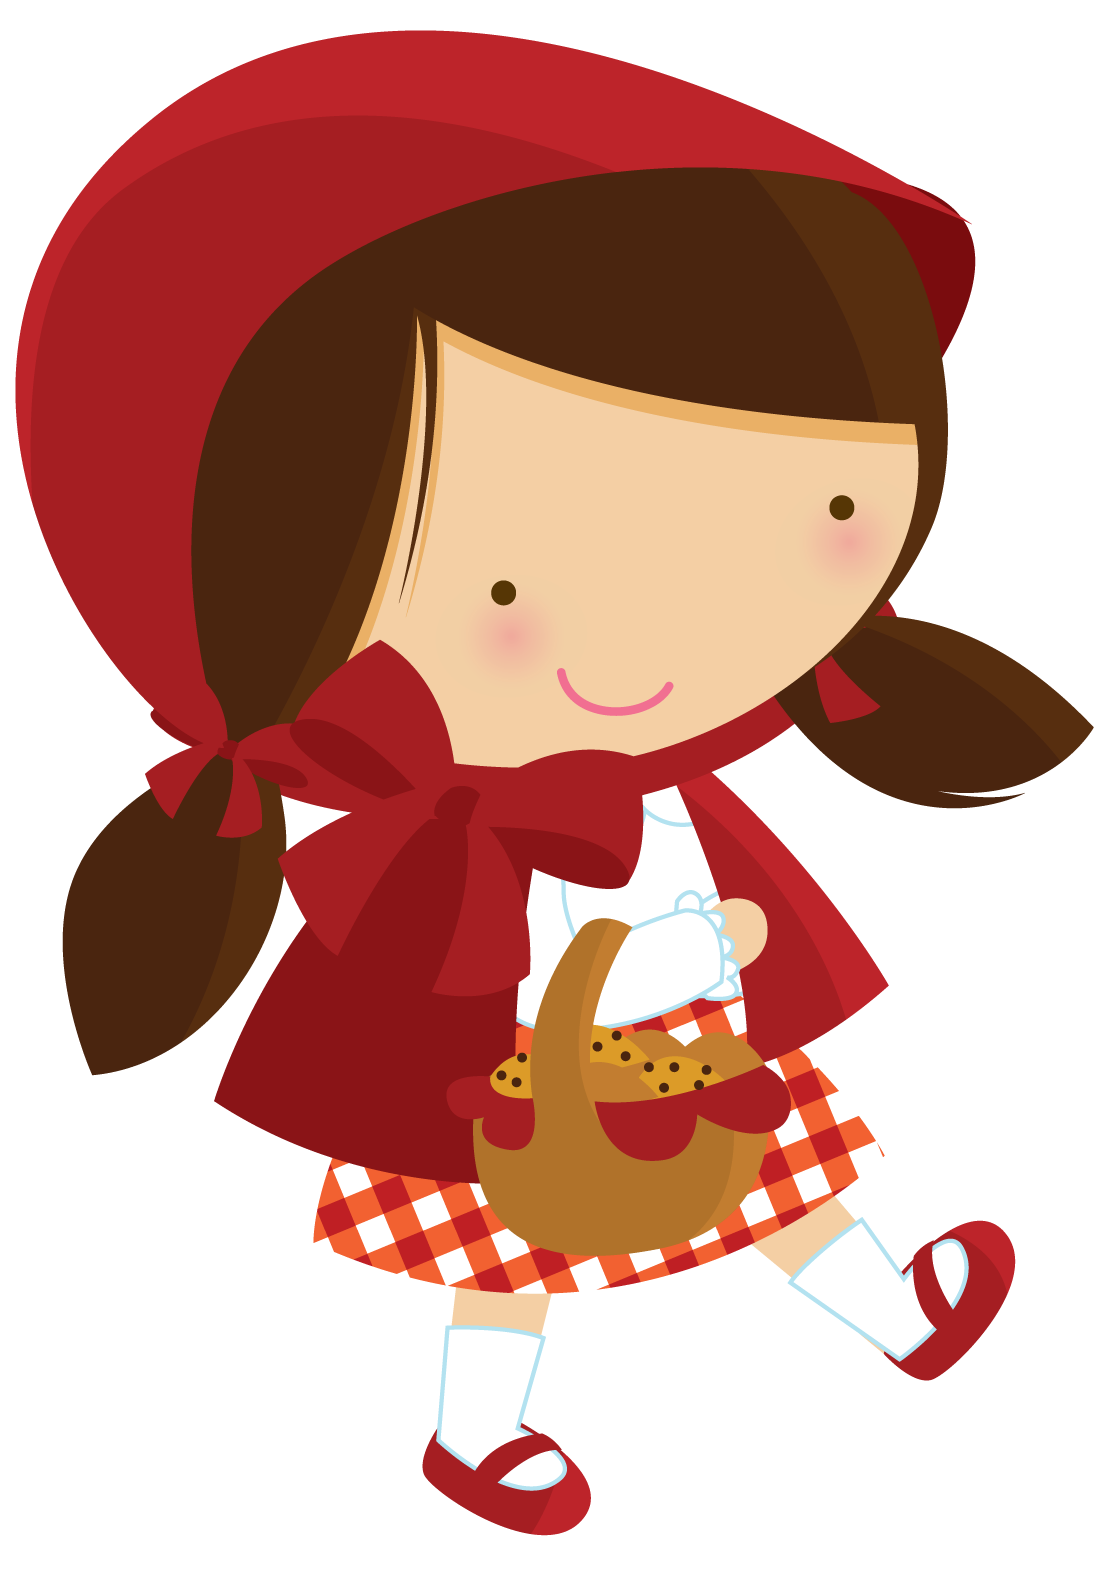 Fantoches para hist ria. Clipart forest red riding hood